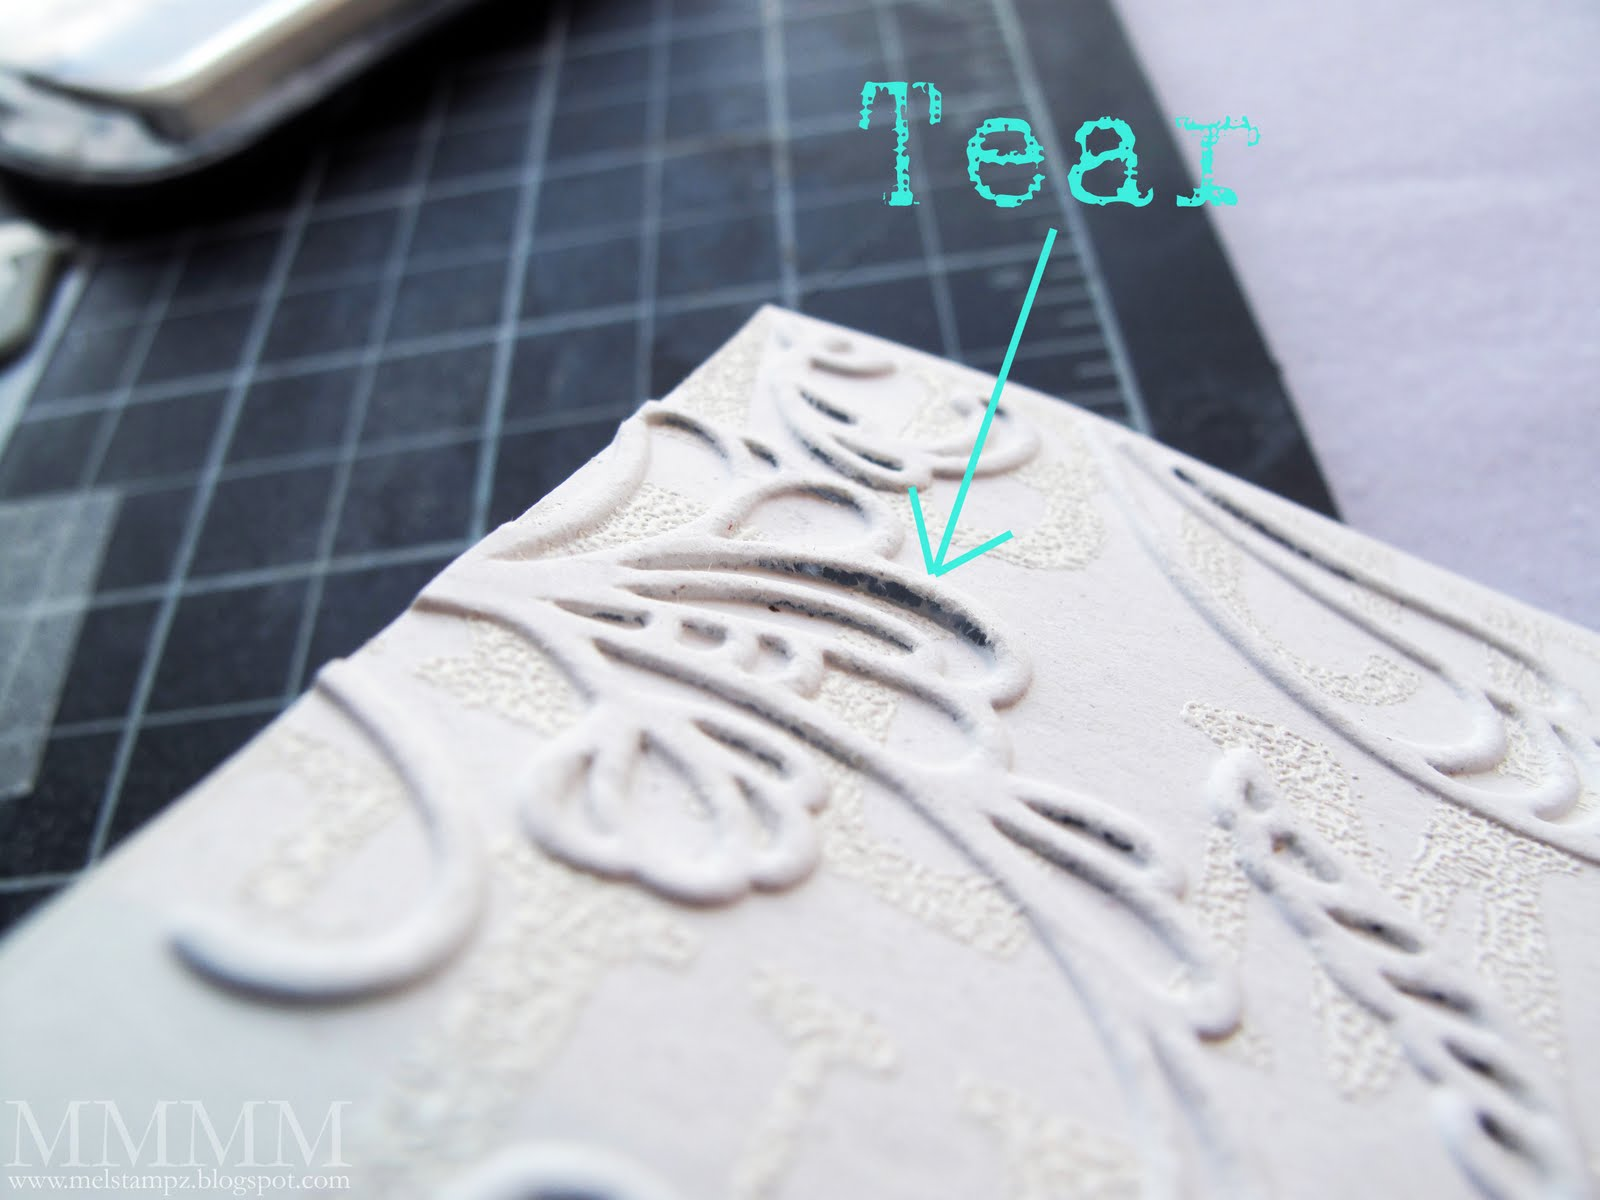 Cut out pressure embossing tutorial & Mel Stampz: Cut out pressure embossing tutorial